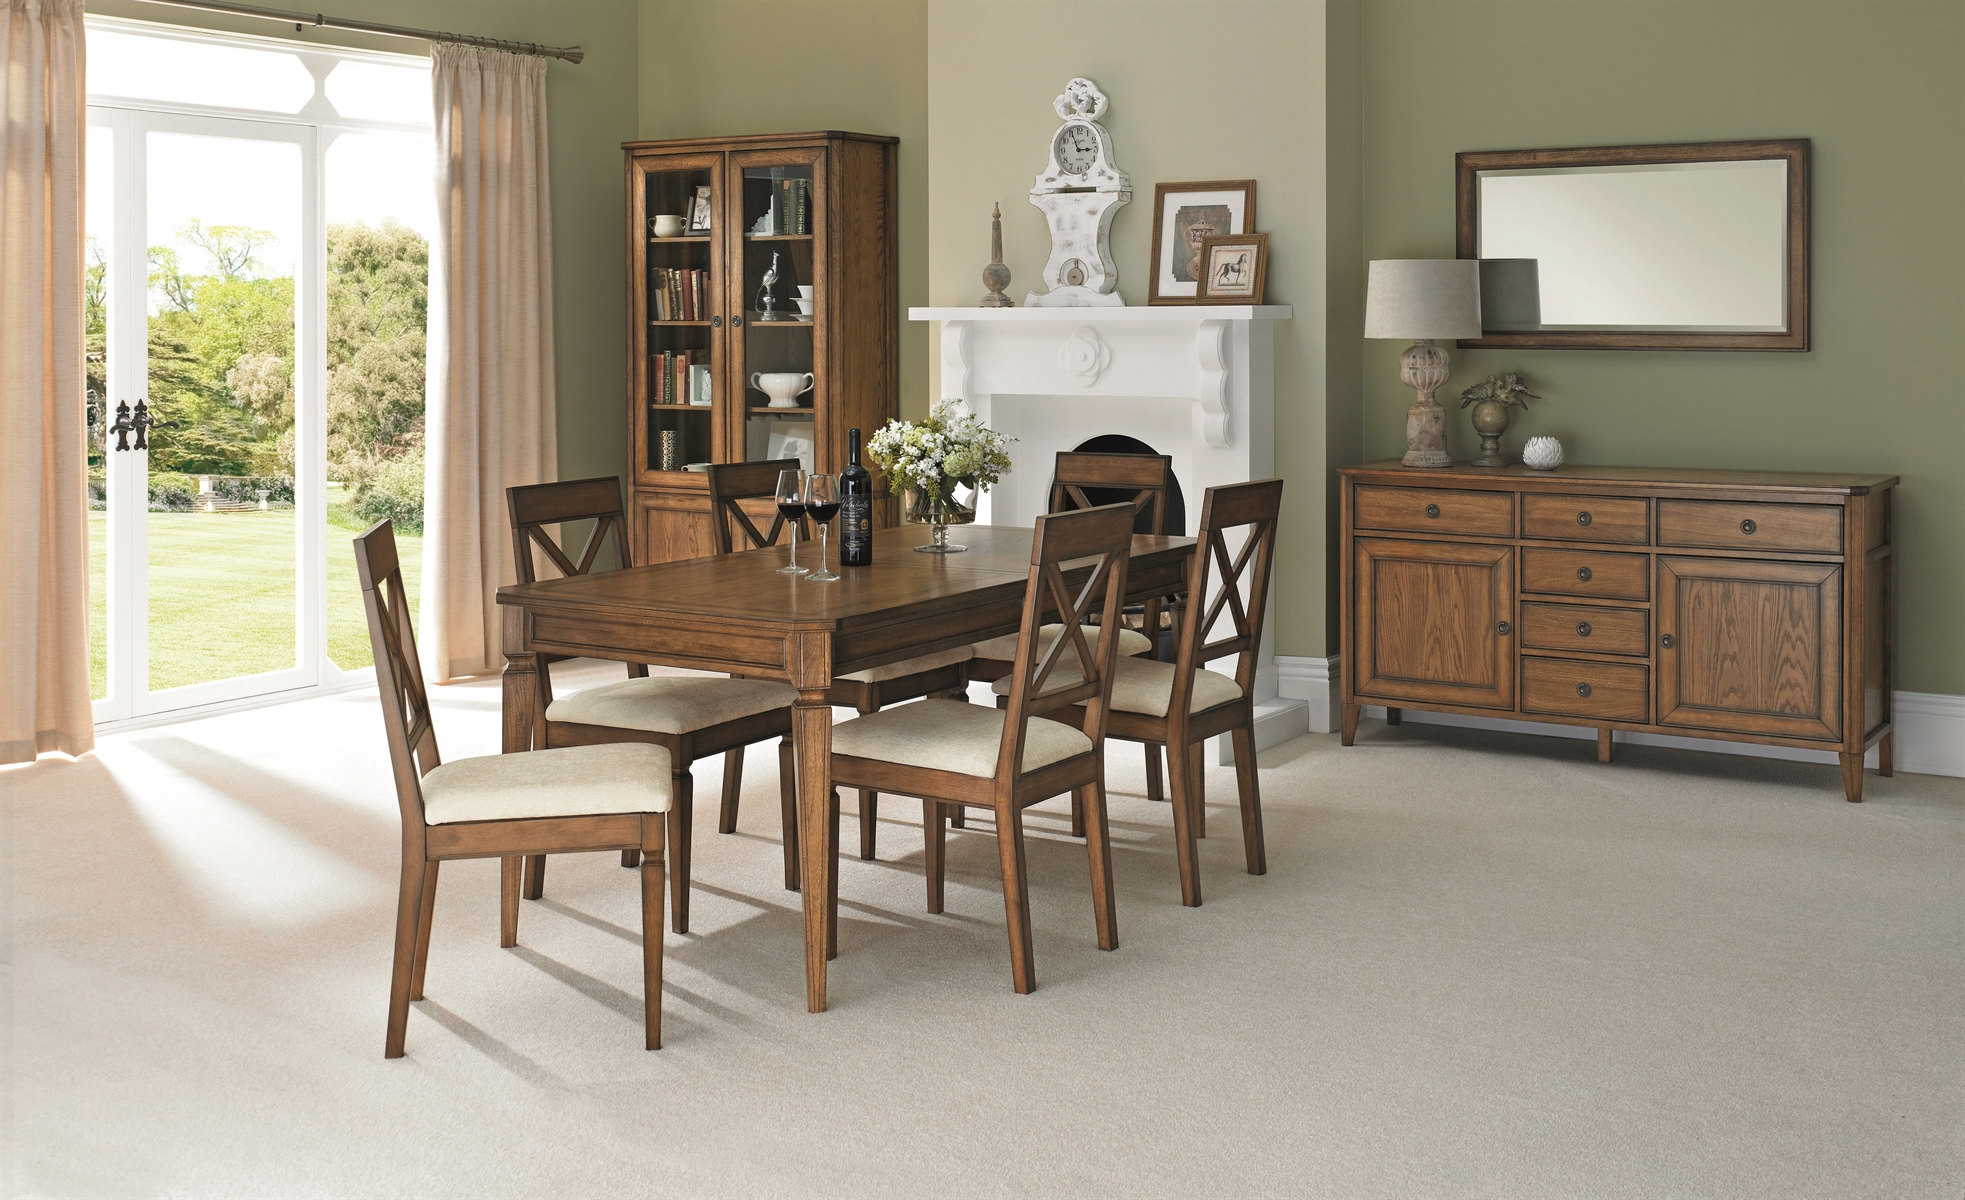 SOPHIA OAK DINING SET